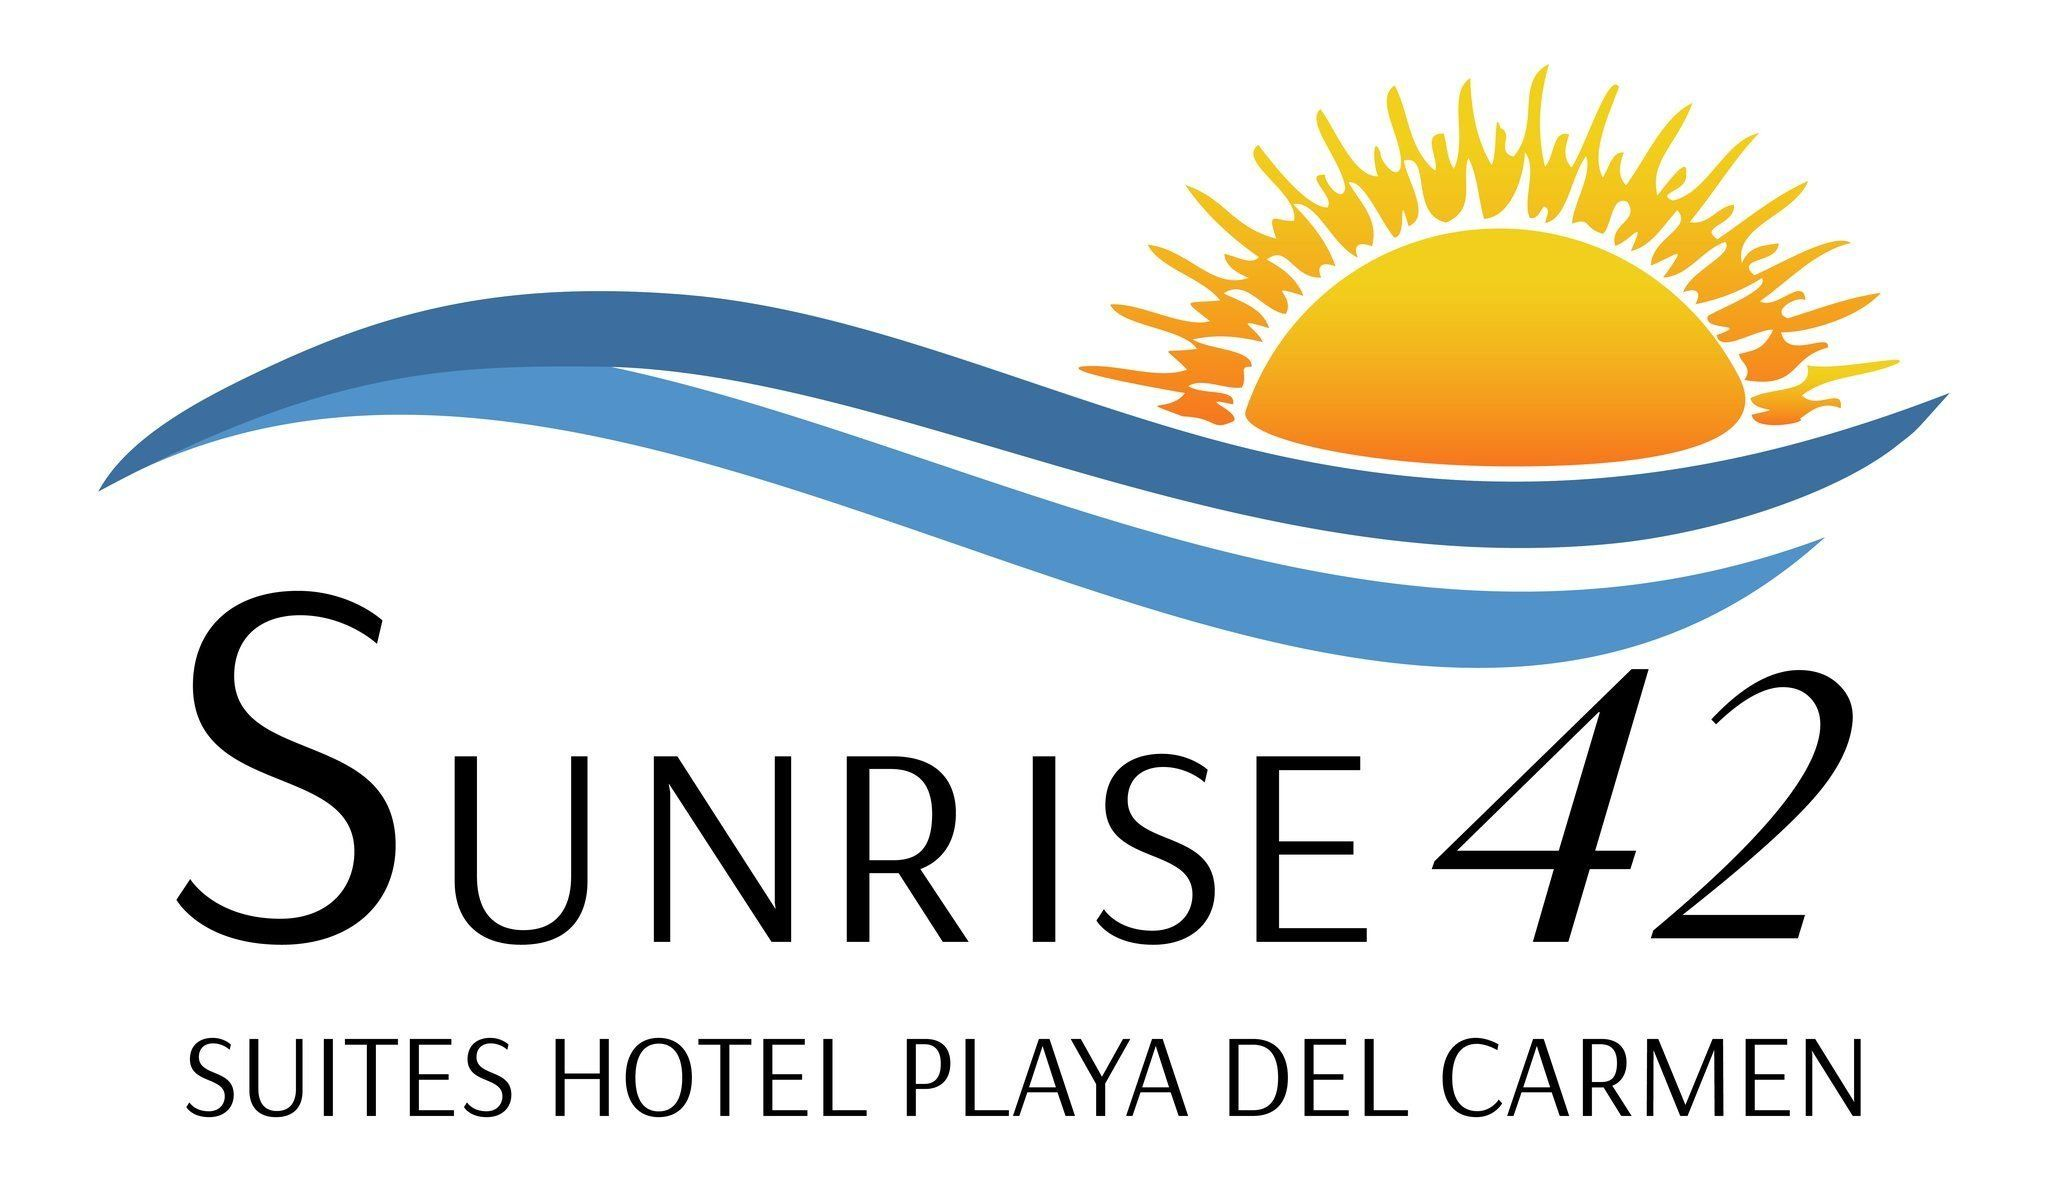 Sunrise 42 Suites Hotel